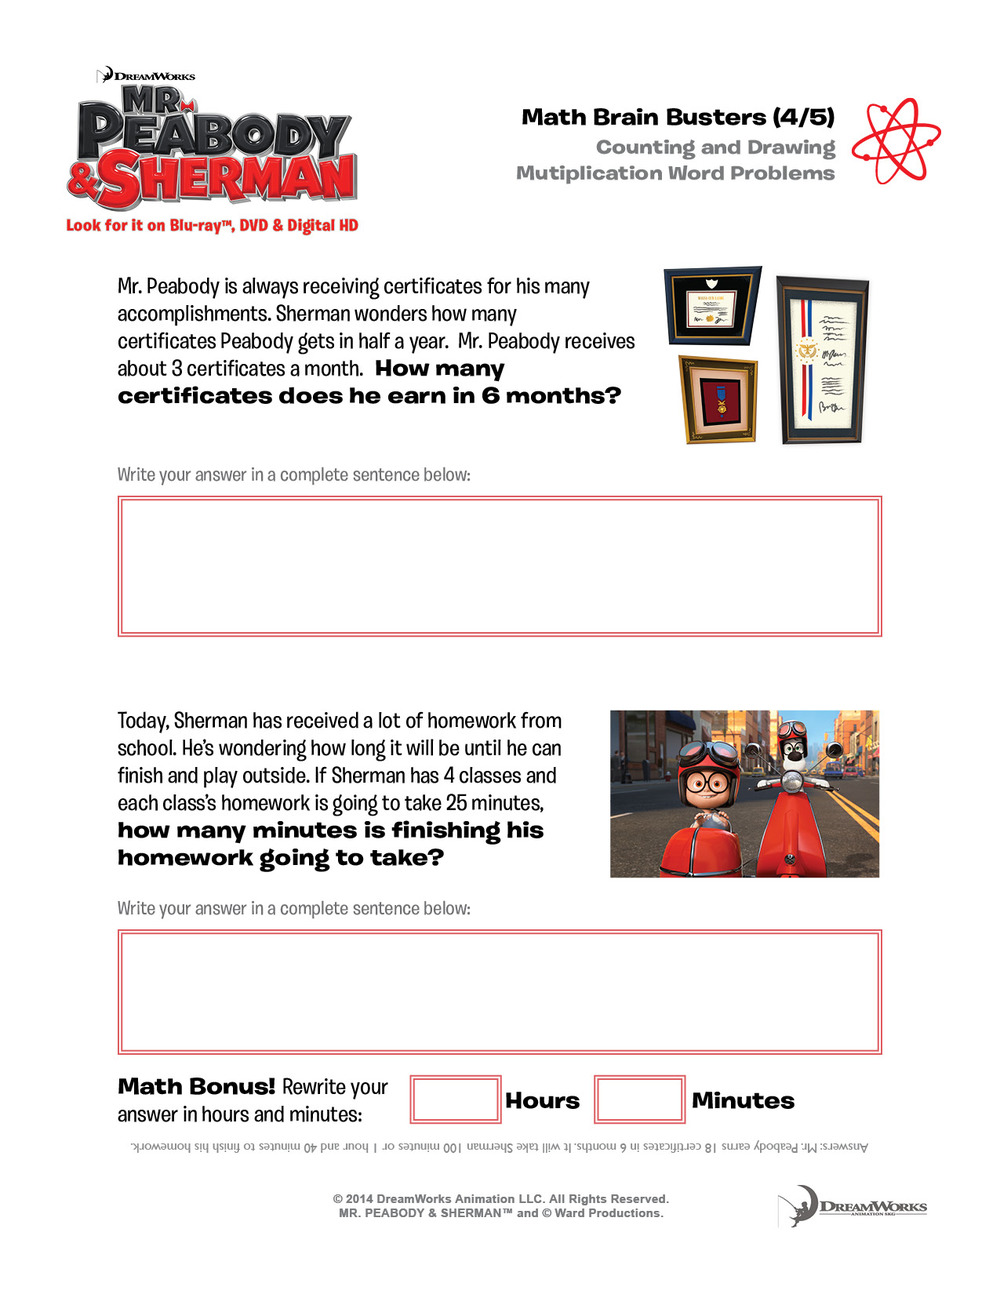 Mr Peabody & Sherman activity sheets